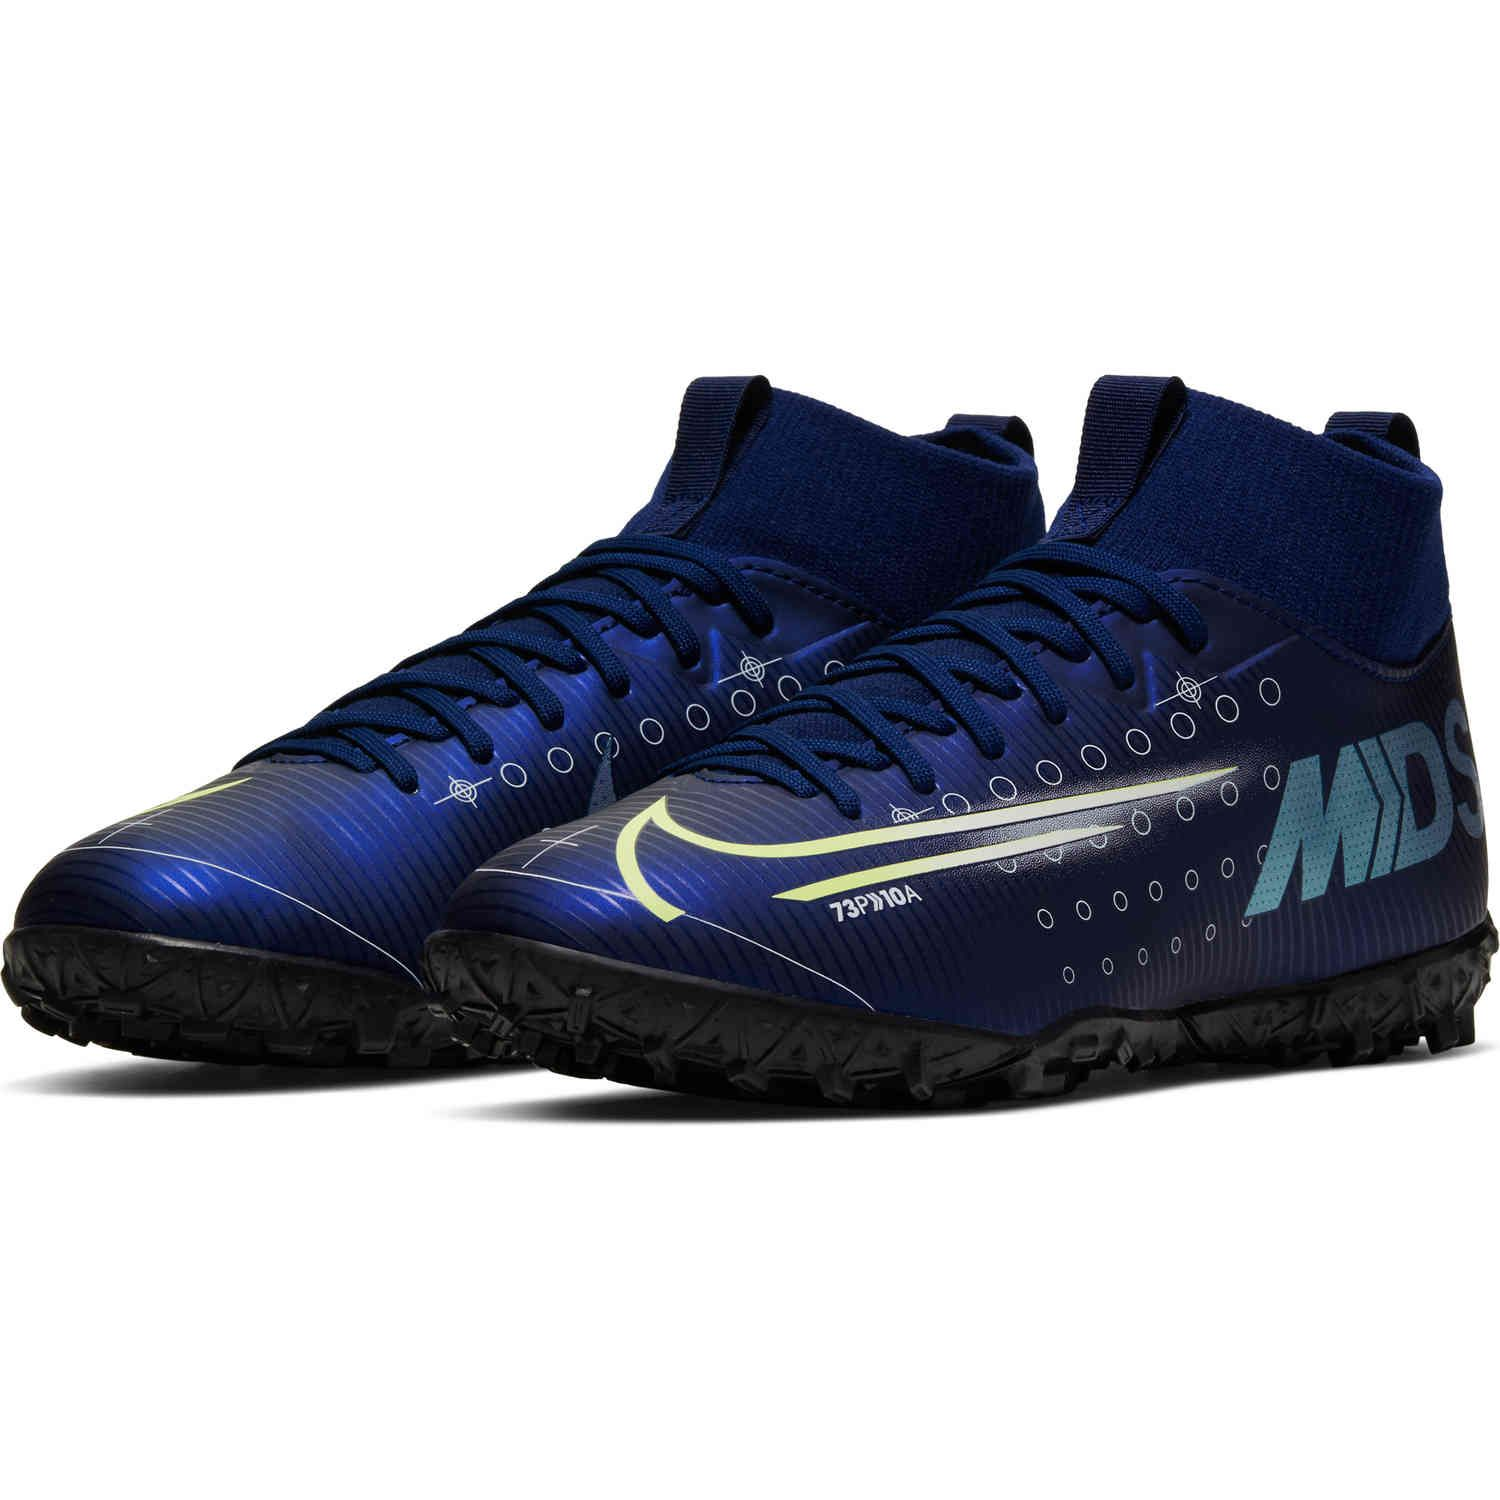 Kids Nike Mercurial Superfly 7 Academy Tf Dream Speed Soccerpro Astro Turf Trainers Football Boots Astro Nike Soccer Shoes